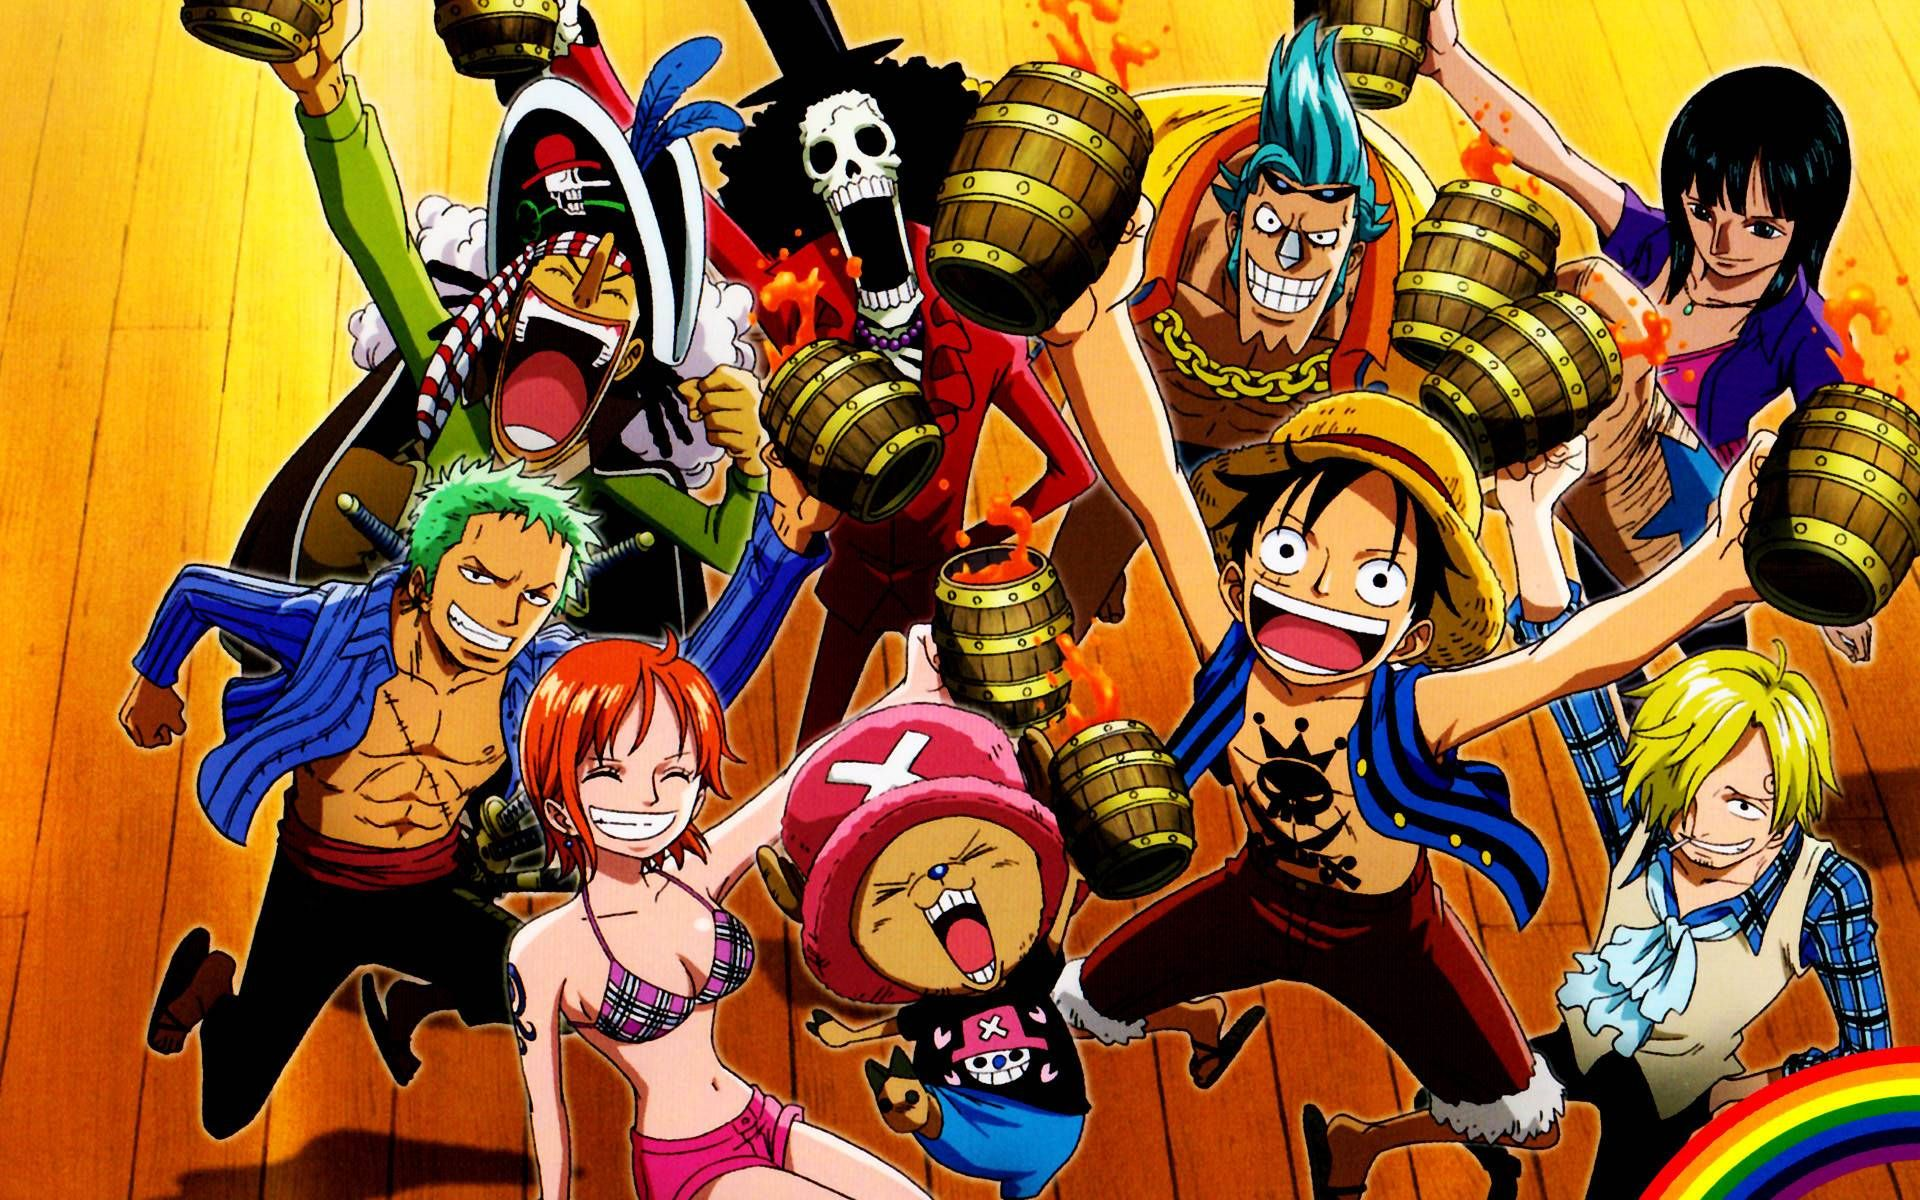 One Piece Chapter 1000 Release Date in 2020 is Still Possible